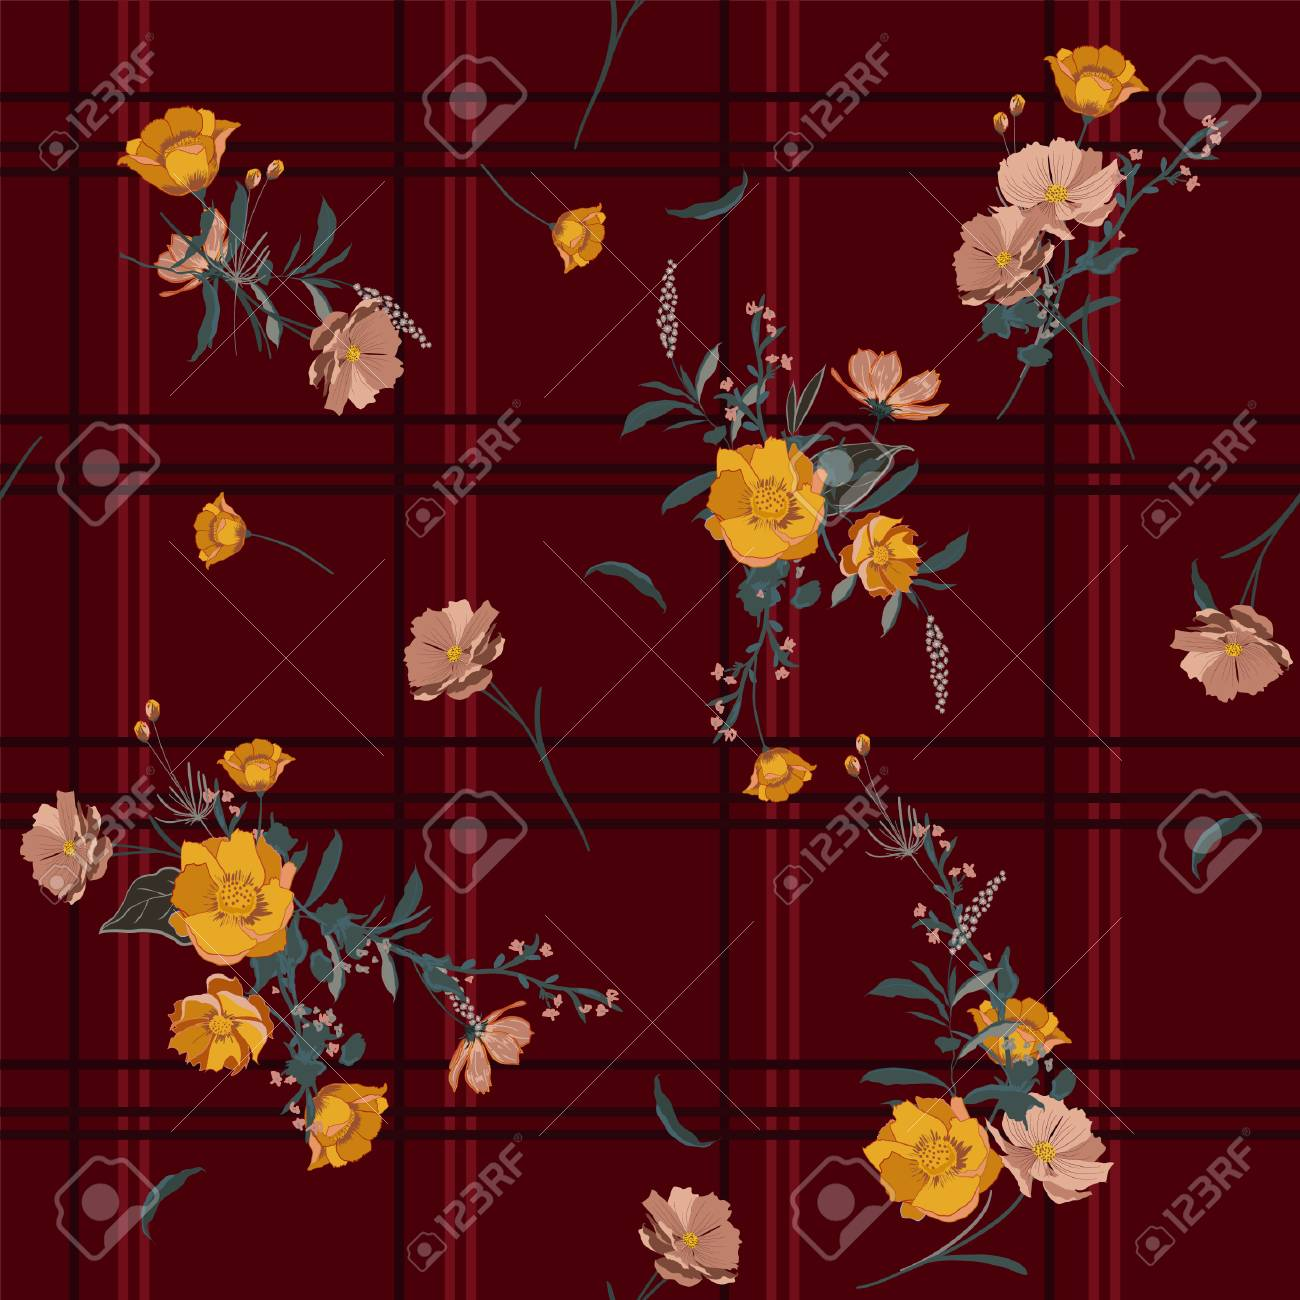 seamless vector check background with bouquets of flowers on